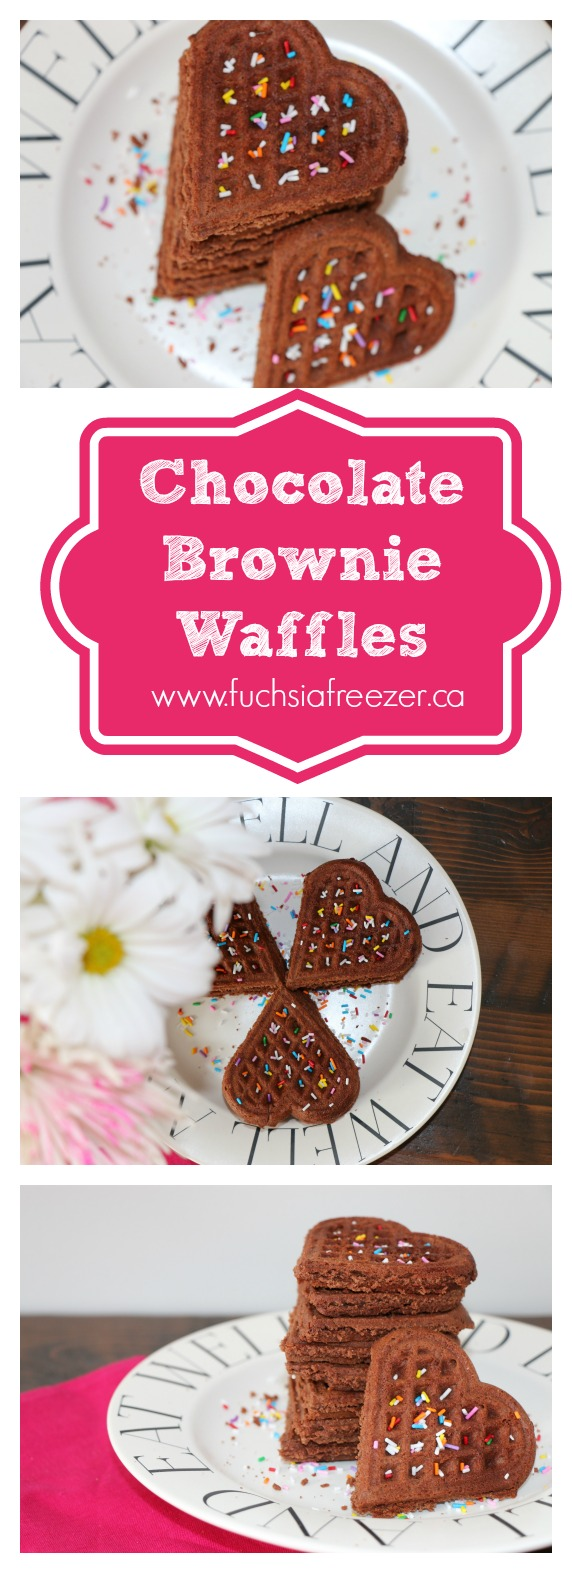 Delicious Chocolate recipes that will make your mouth water from the #FoodieMamas. Starting with this Chocolate Brownie Waffle!